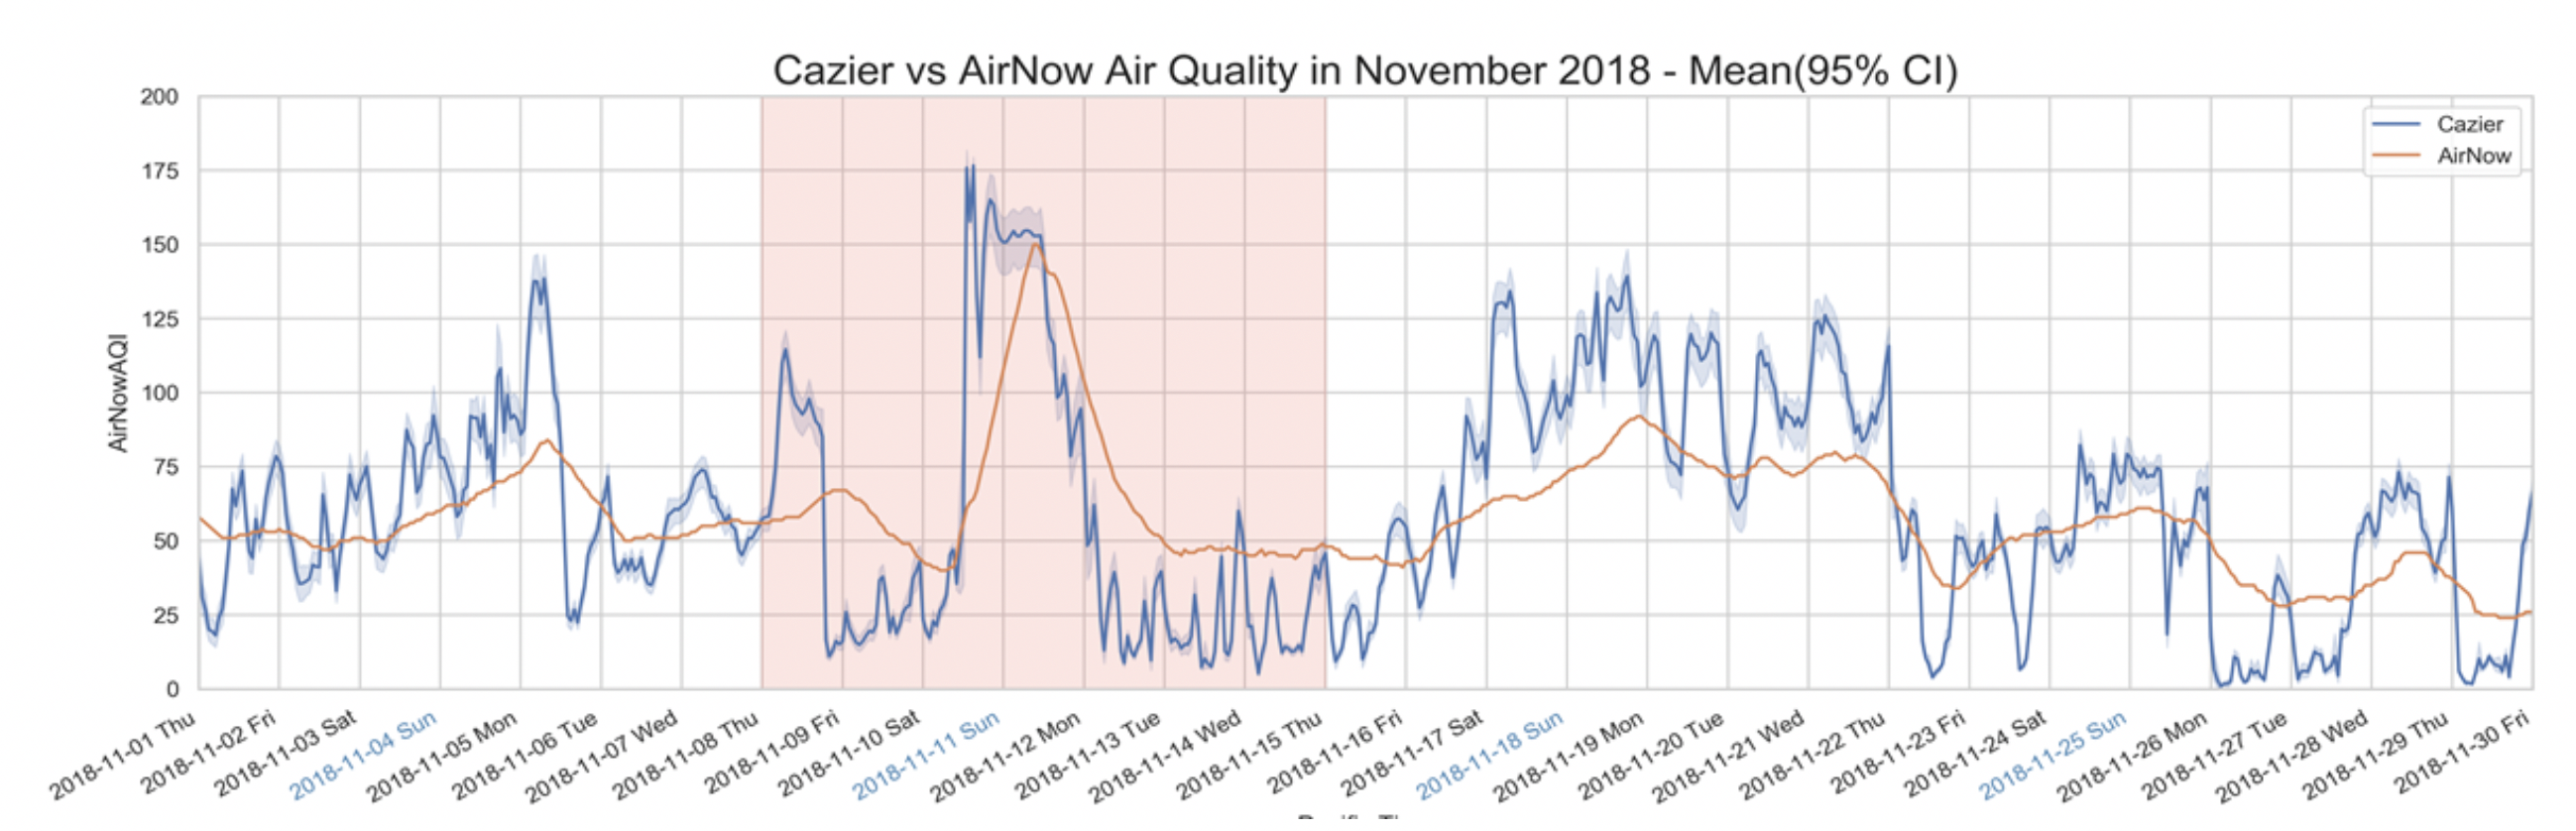 Air quality index as measured by AirNow and the team's PurpleAir sensors